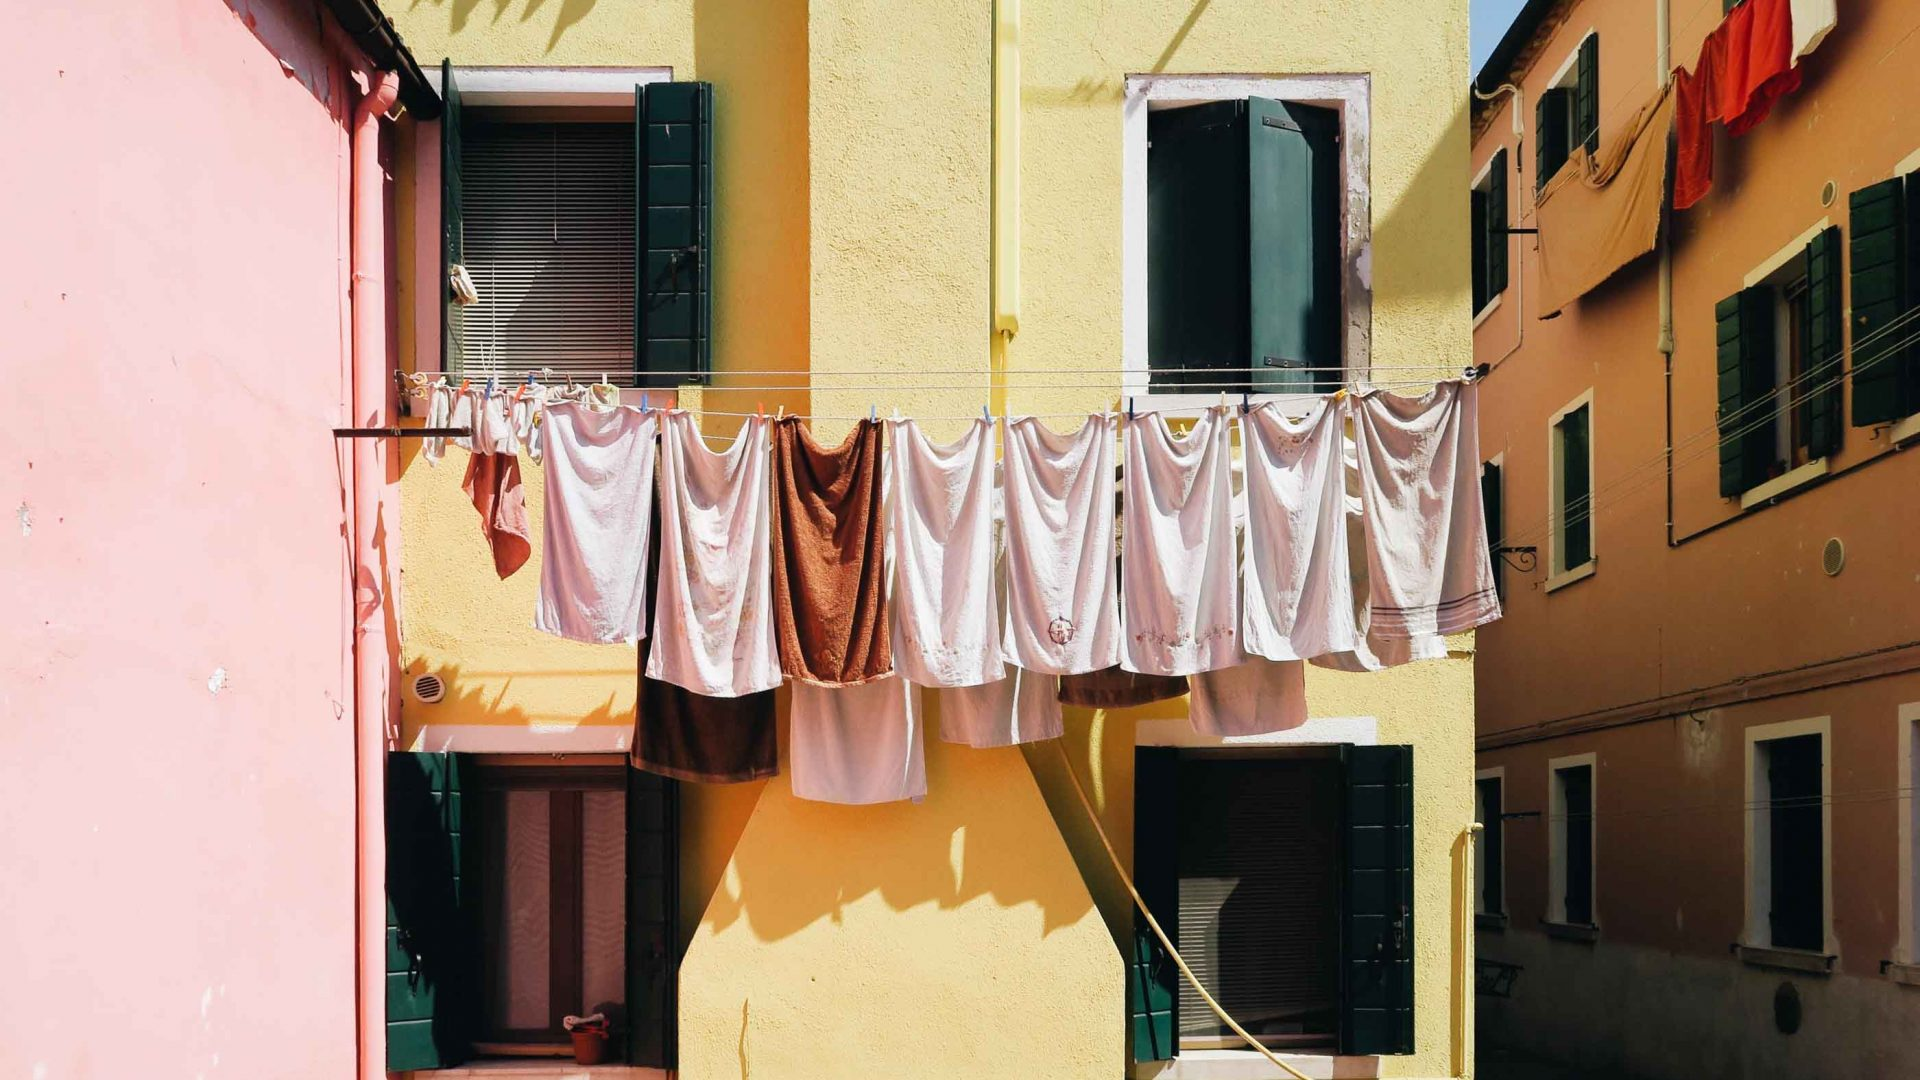 Laundry hanging from a line in front of a yellow building.